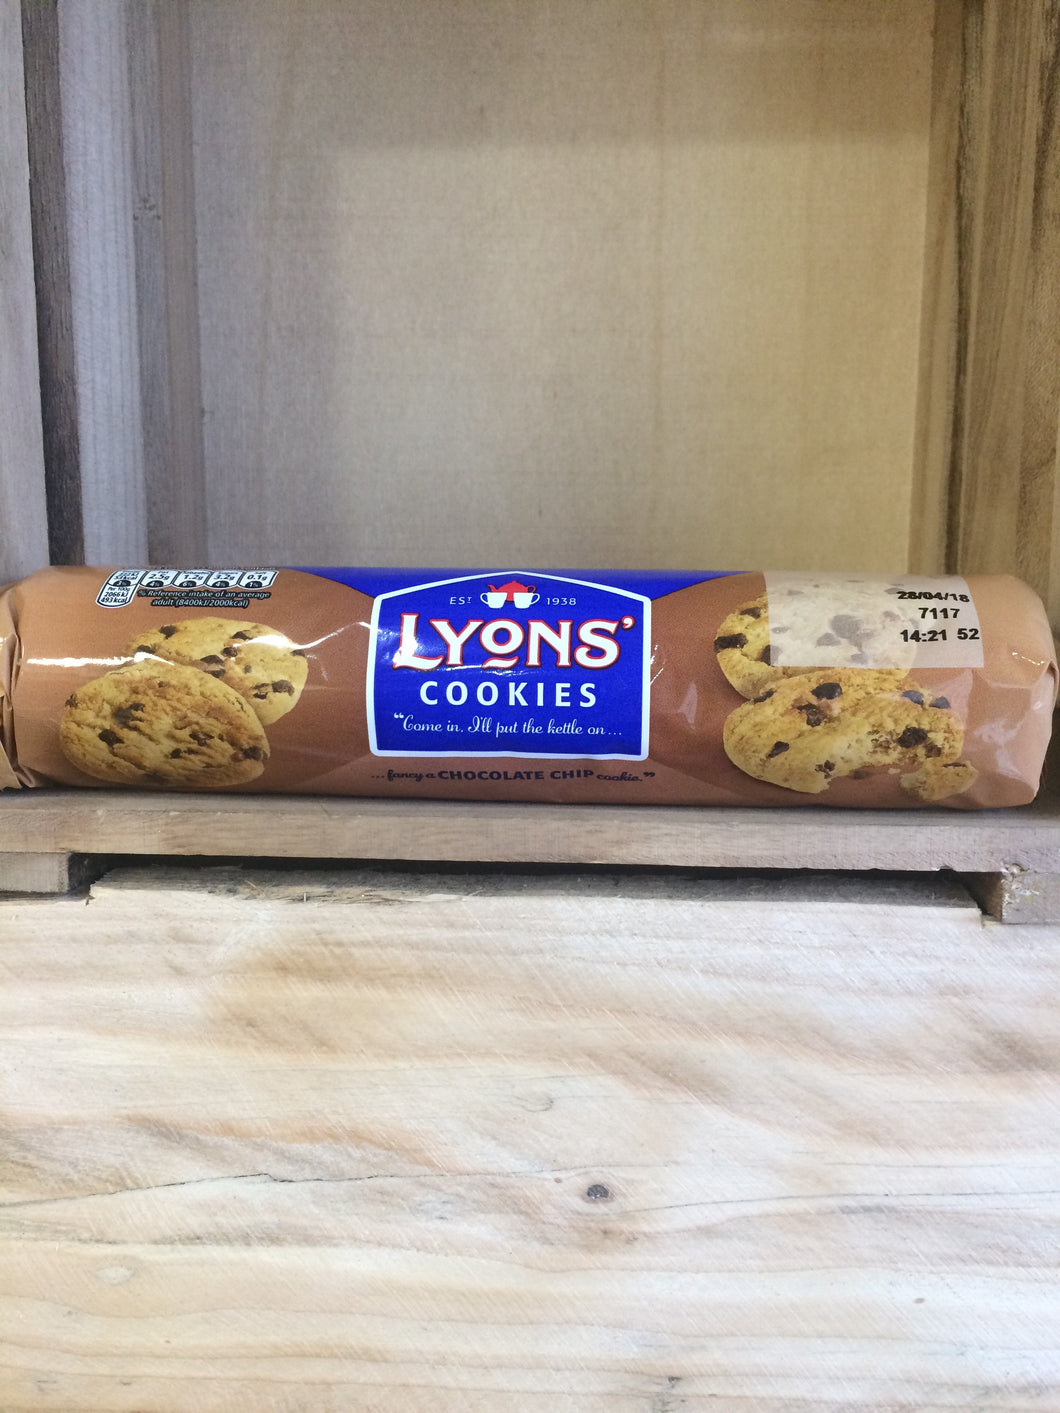 Lyons' Chocolate Chip Cookies 200g